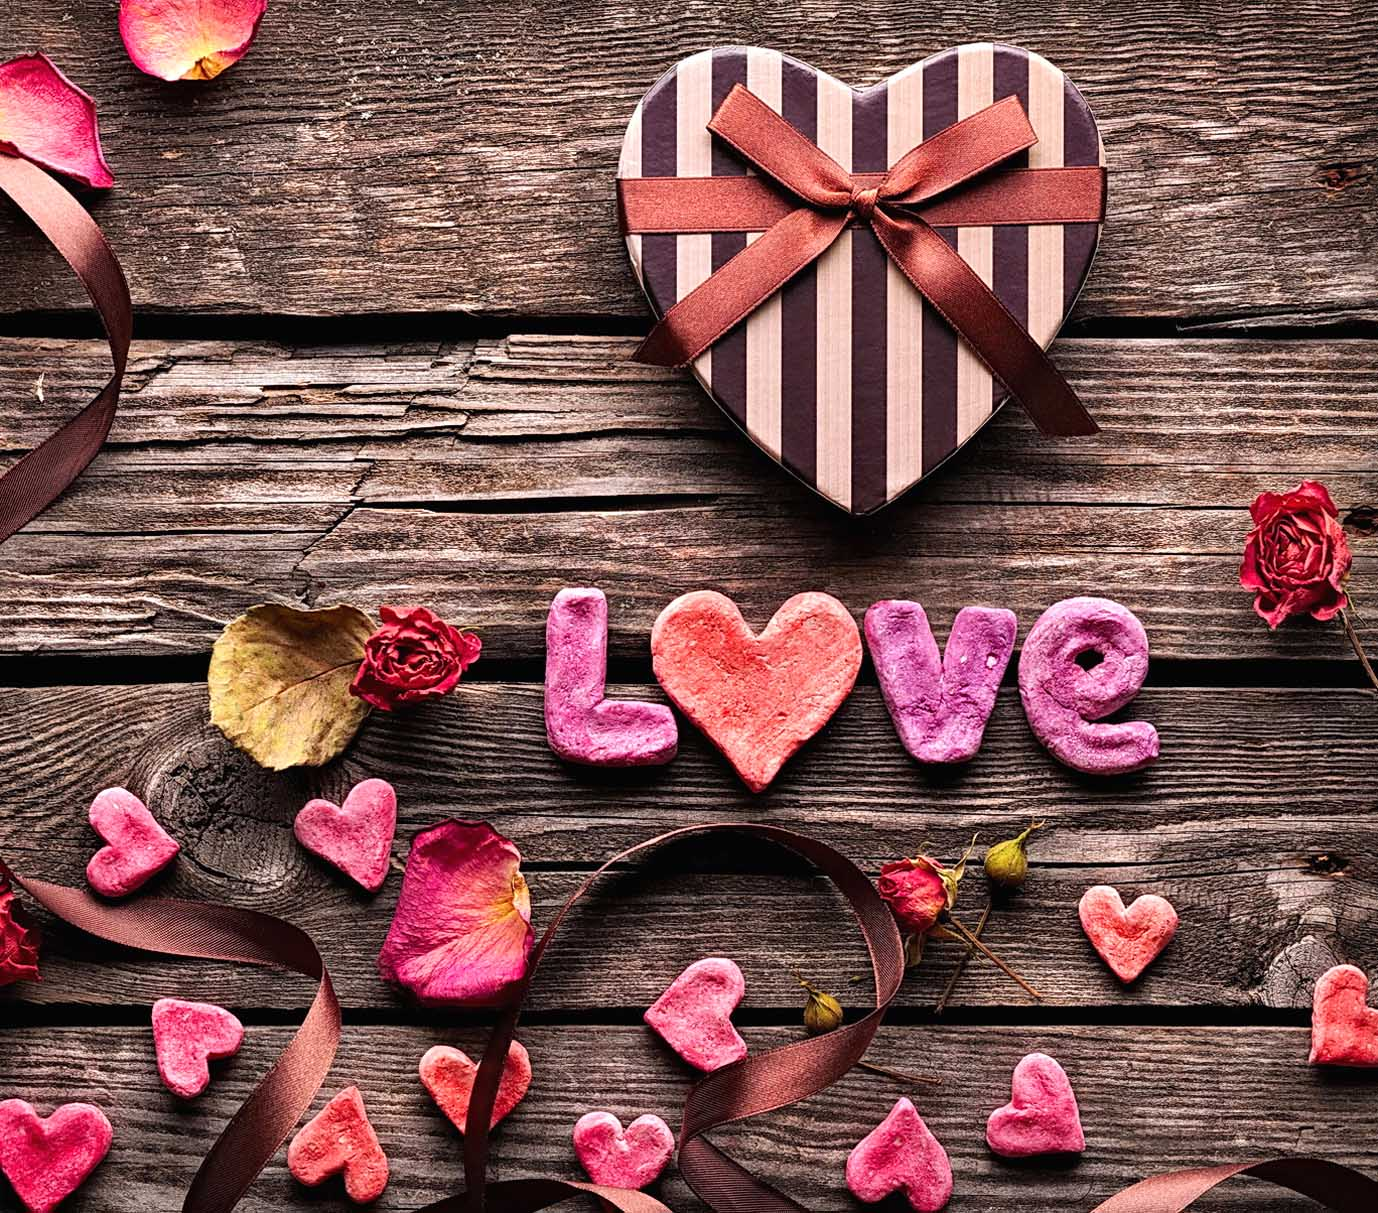 Cute Love Wallpaper Images For Mobile K Pictures